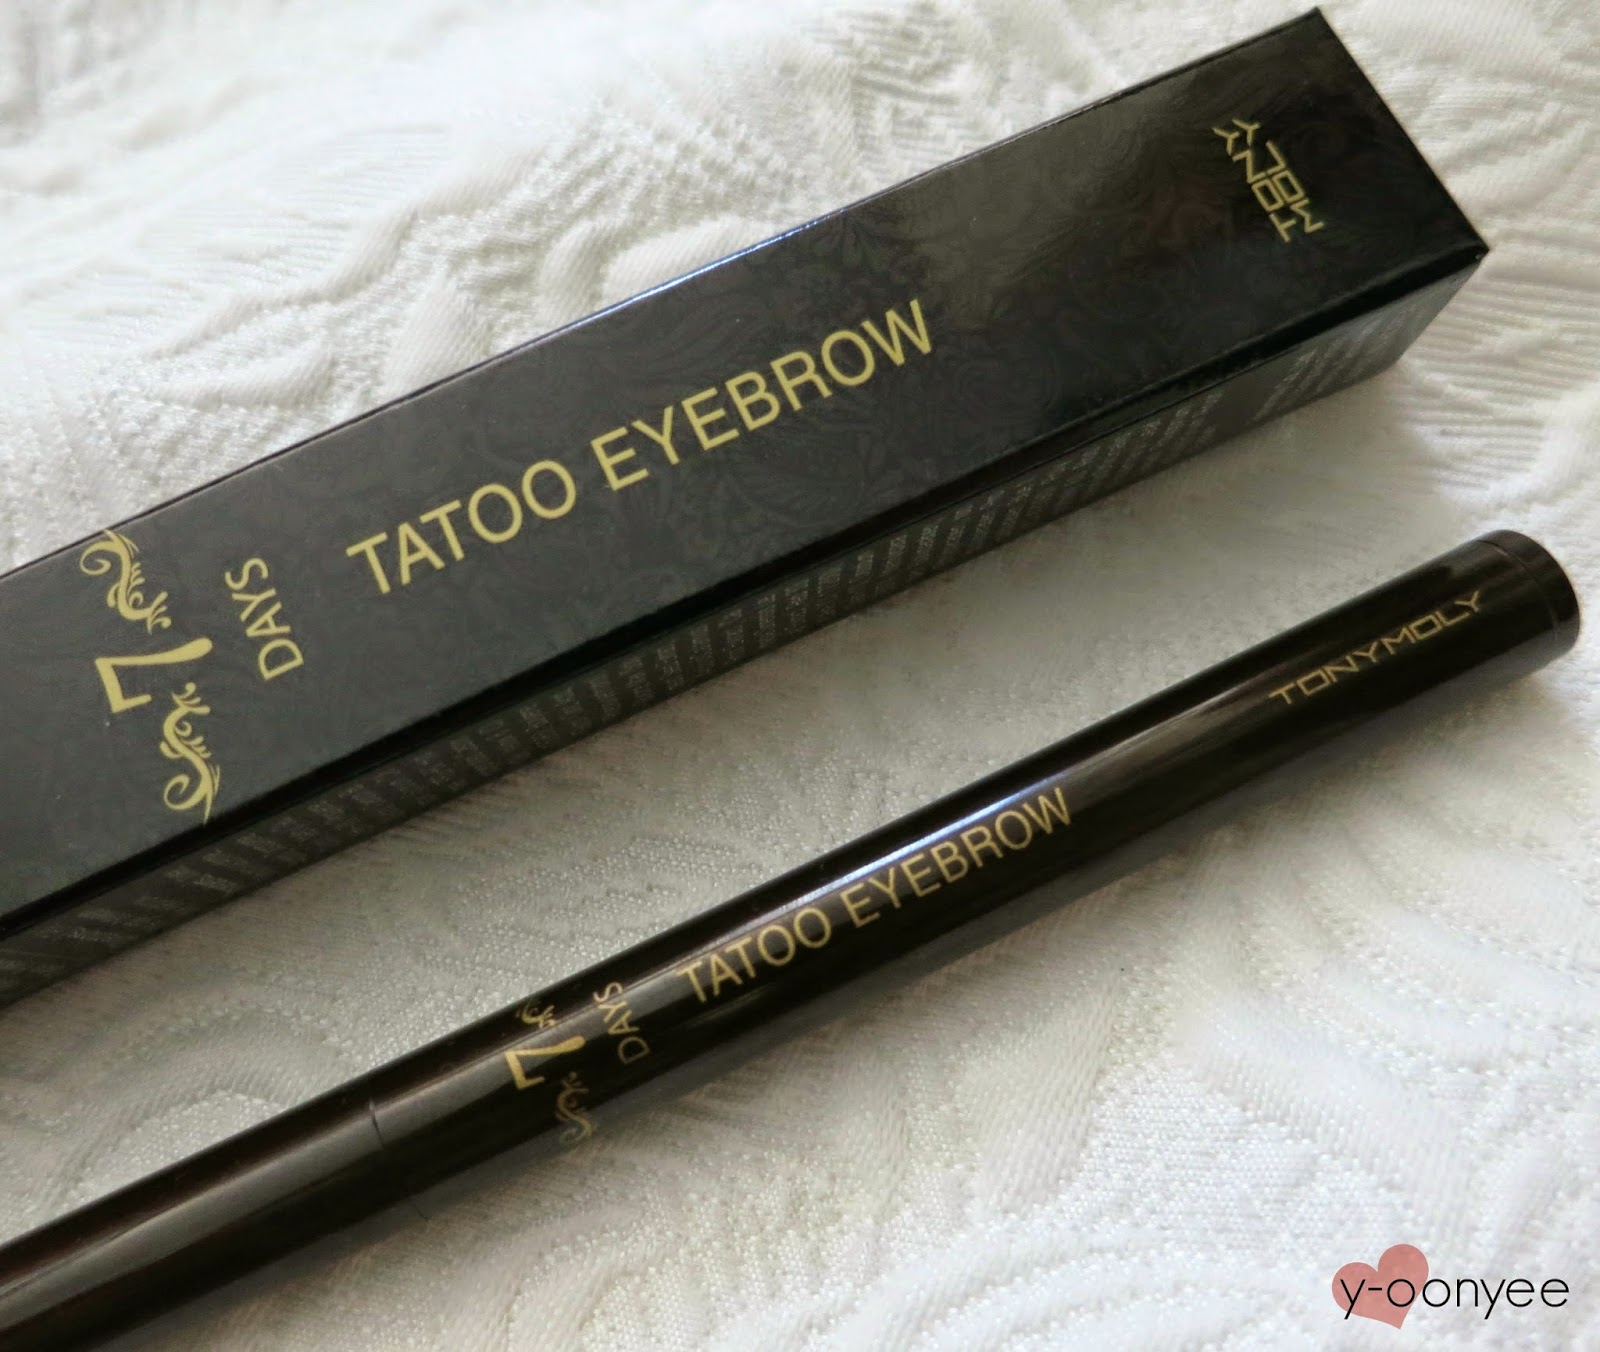 Tony Moly 7 Days Tattoo Eyebrow In 02 Dark Brown Review Yoonyee